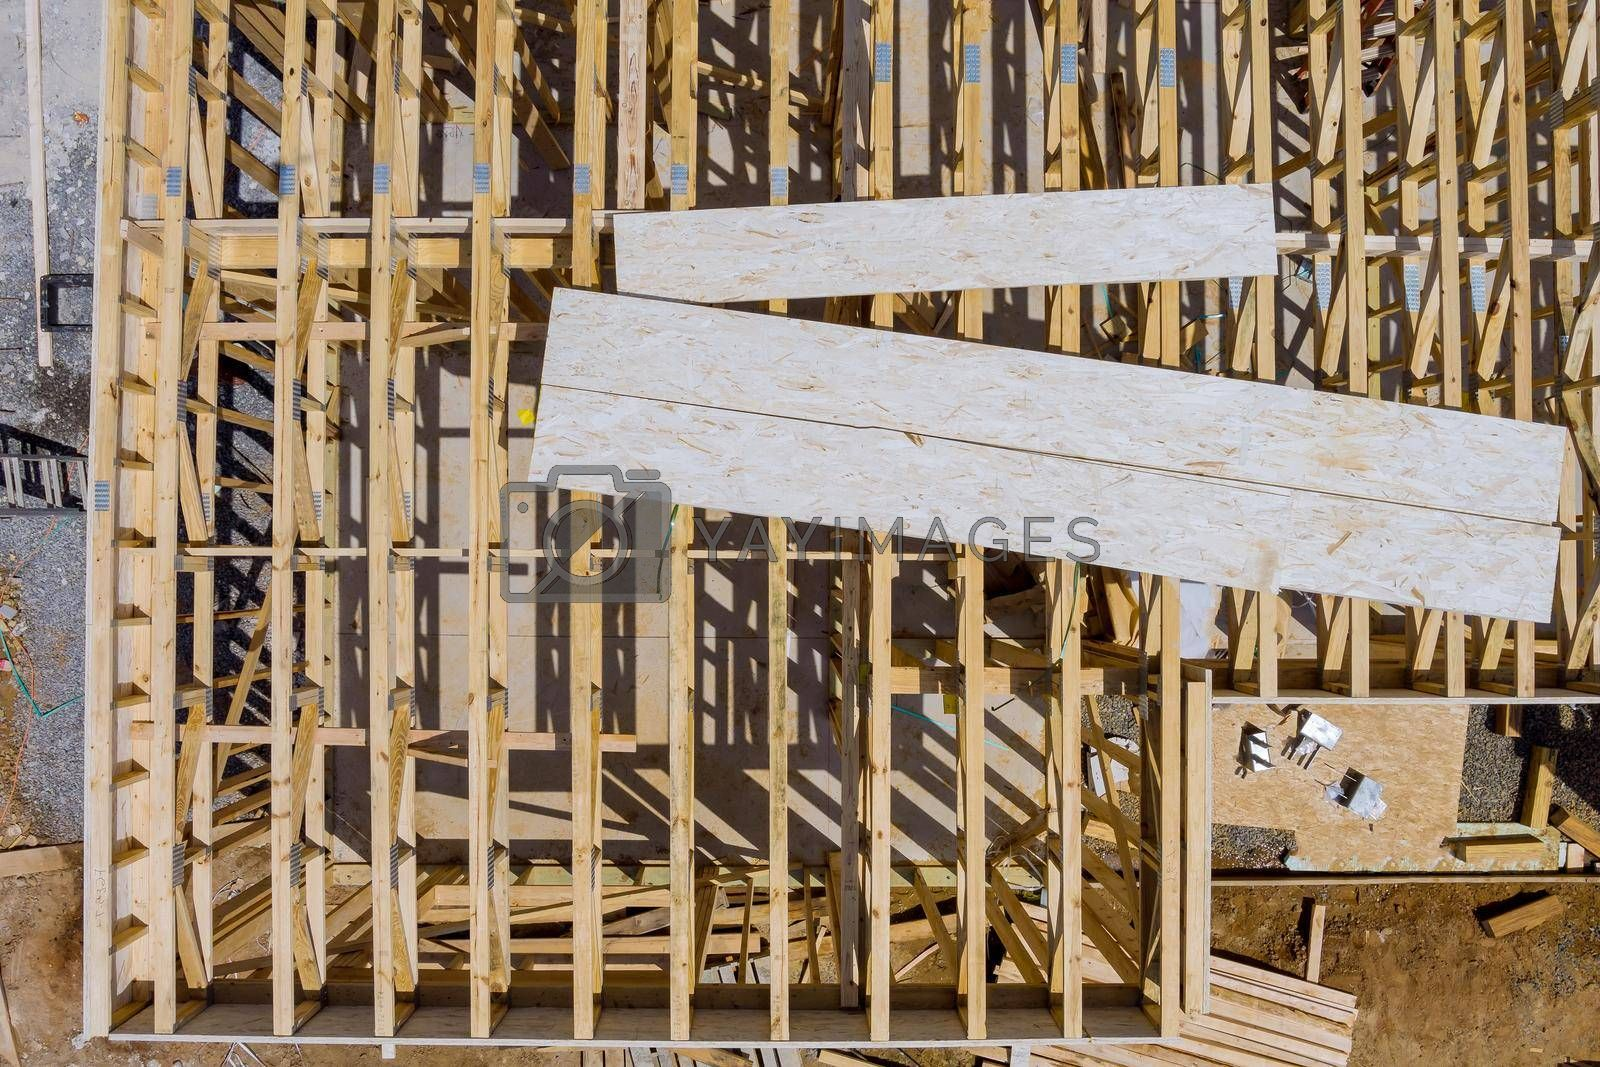 Royalty free image of Truss, joist, beam new house under construction exterior framing timber framing by ungvar